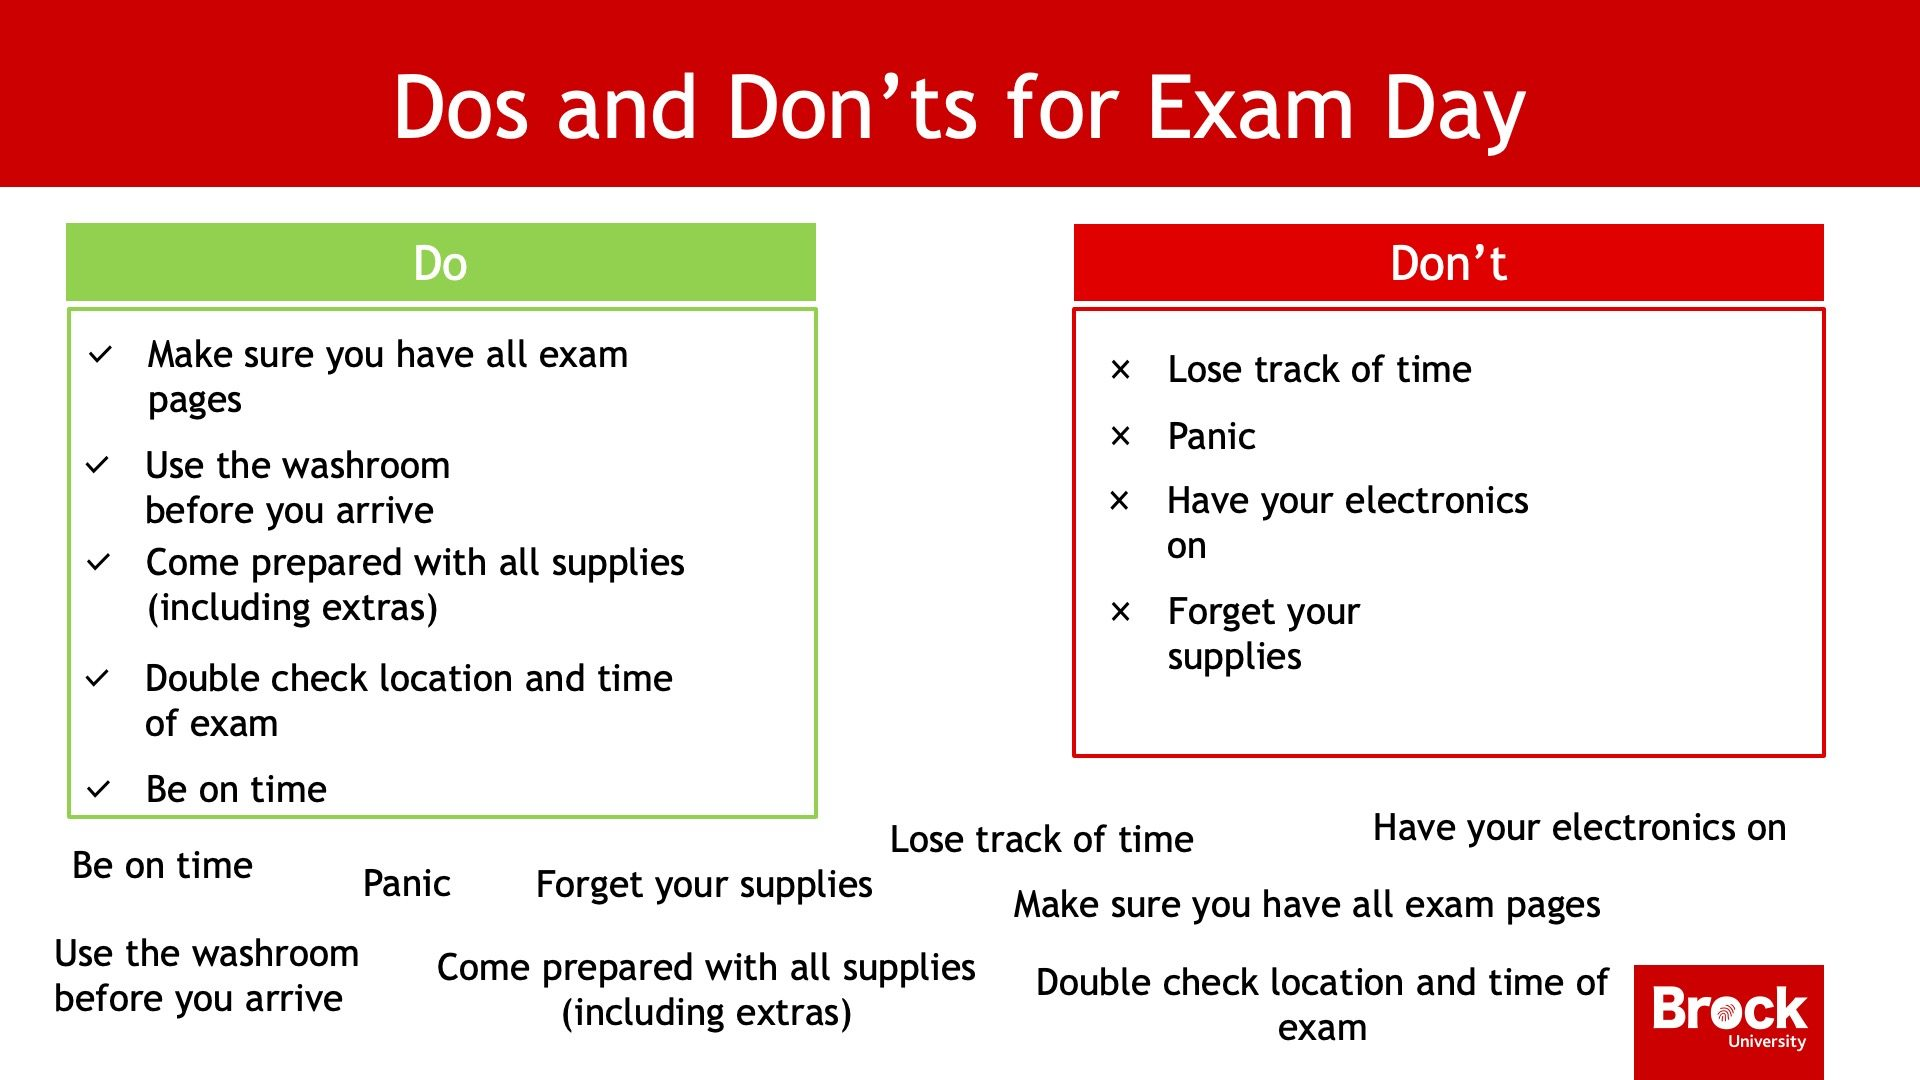 Dos and Don'ts for exam day